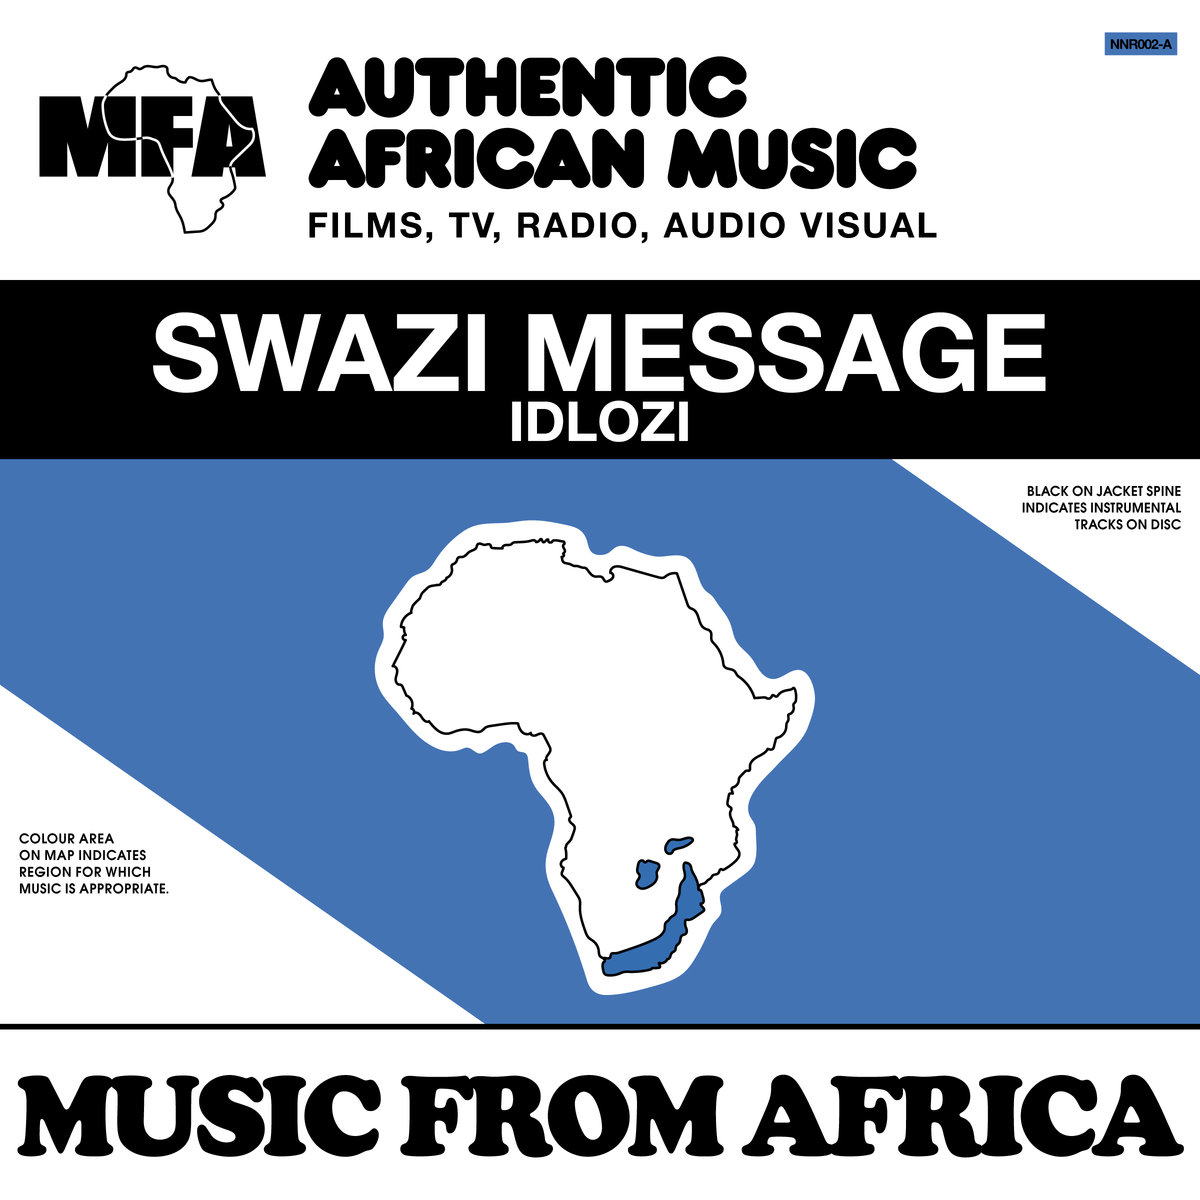 SWAZI MESSAGE COVER.jpg